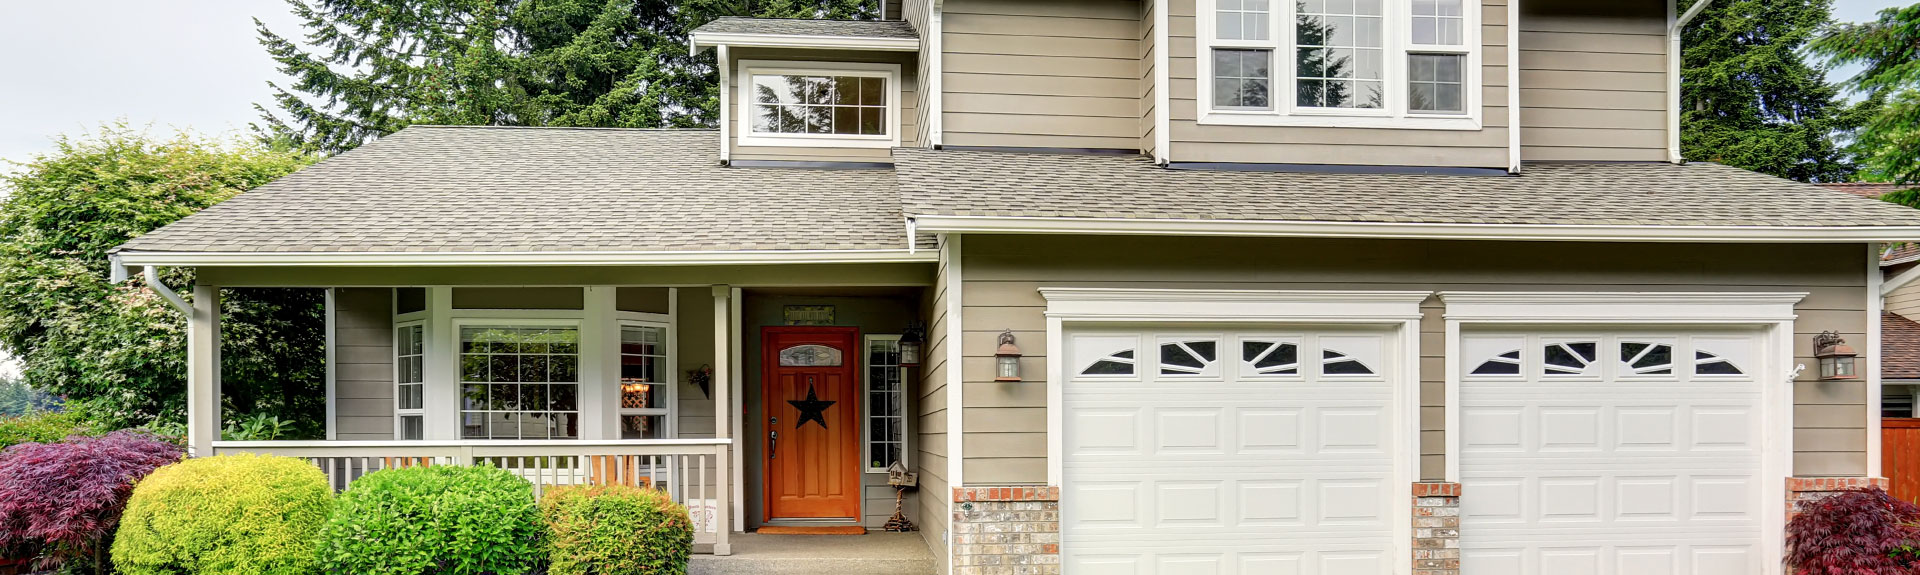 Mark J Fisher Roofing - Quakertown Roofing Company